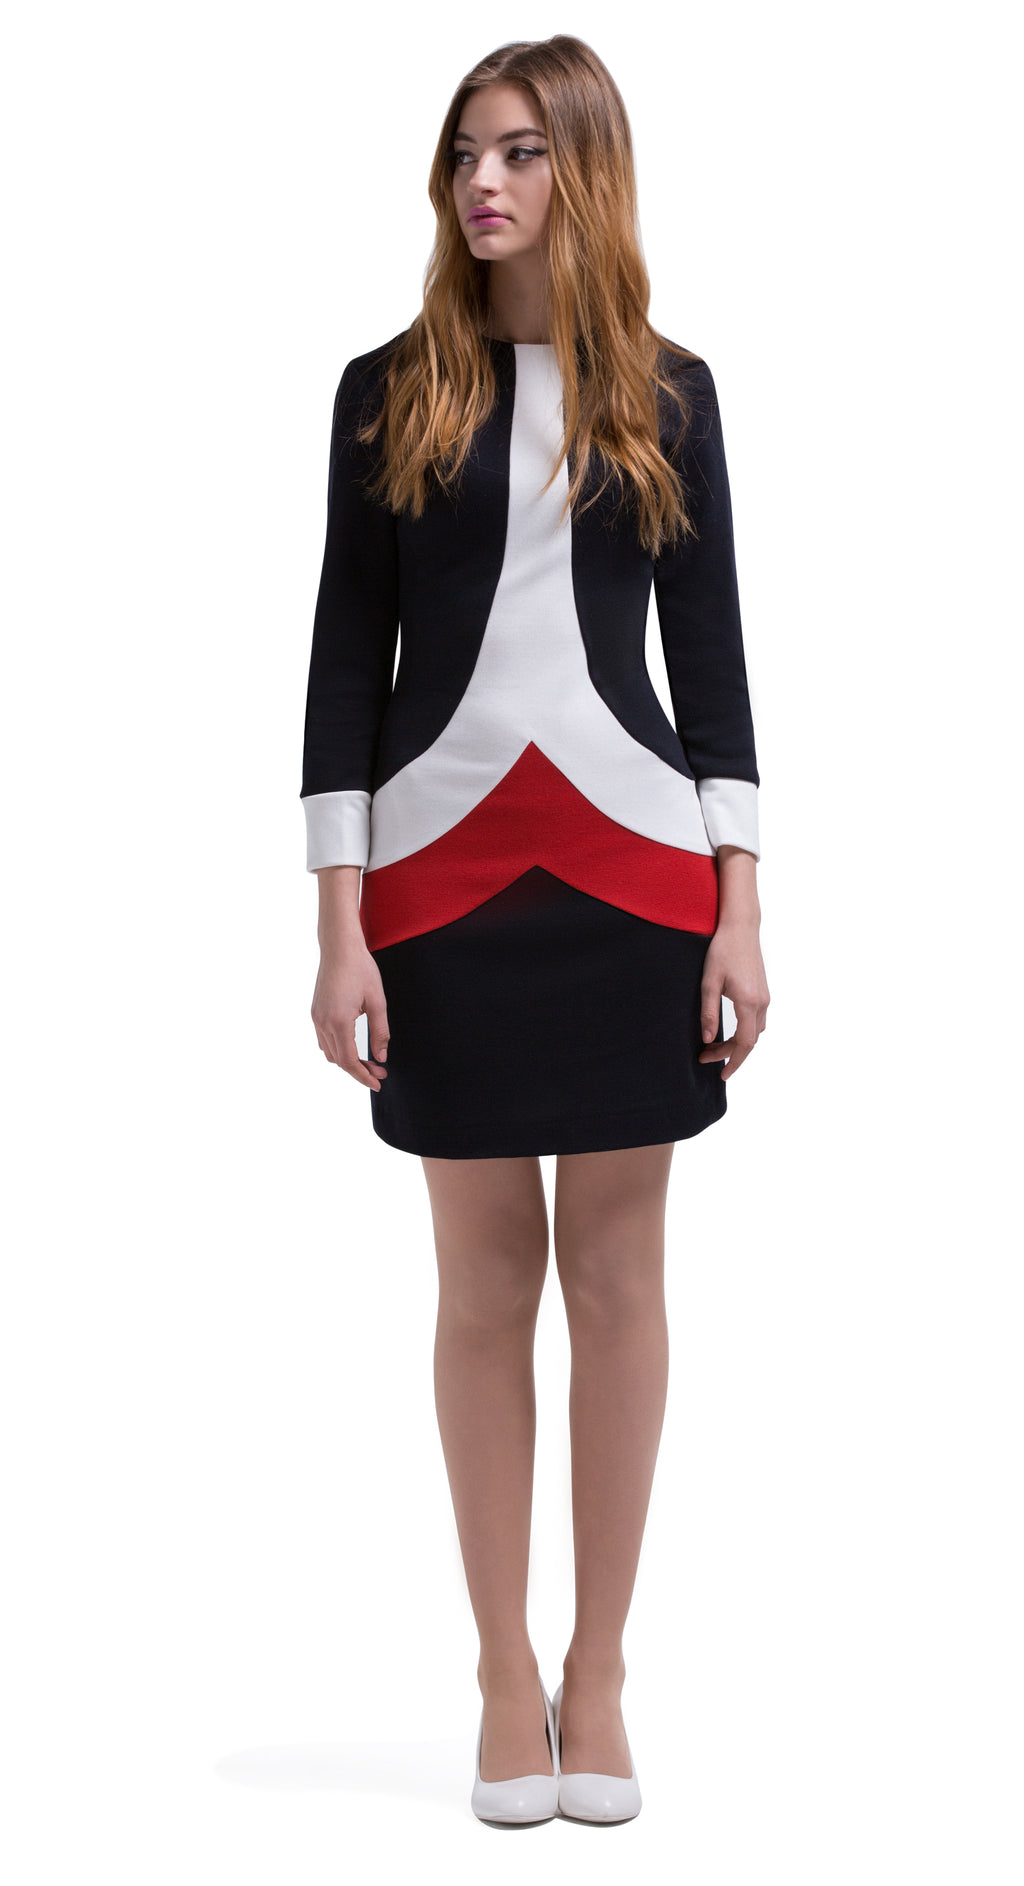 This Autumn, long sleeve Italian jersey straight cut dress delivers an immediate sixties retro impression through use of the chevron bodice panels creating a unique tric-olour stripe. Back zipper closure, full length sleeve with white cuff detailing. Generous stretch within the jersey; a comfortable dress without surrendering impacting style.